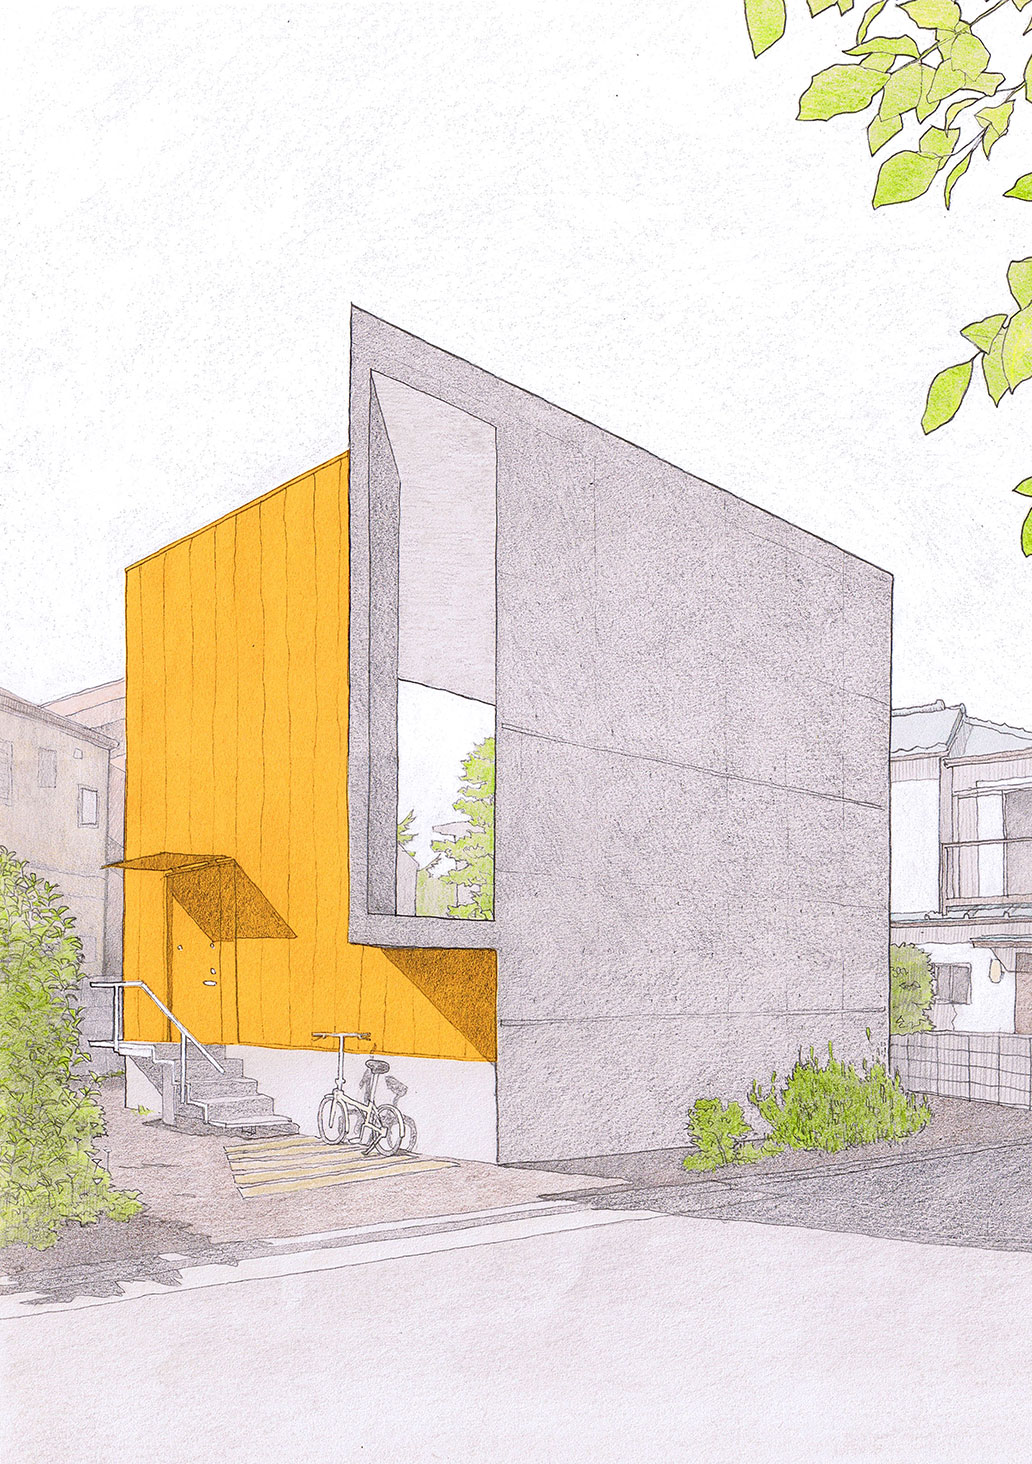 HOUSE WITH ORANGE WALL